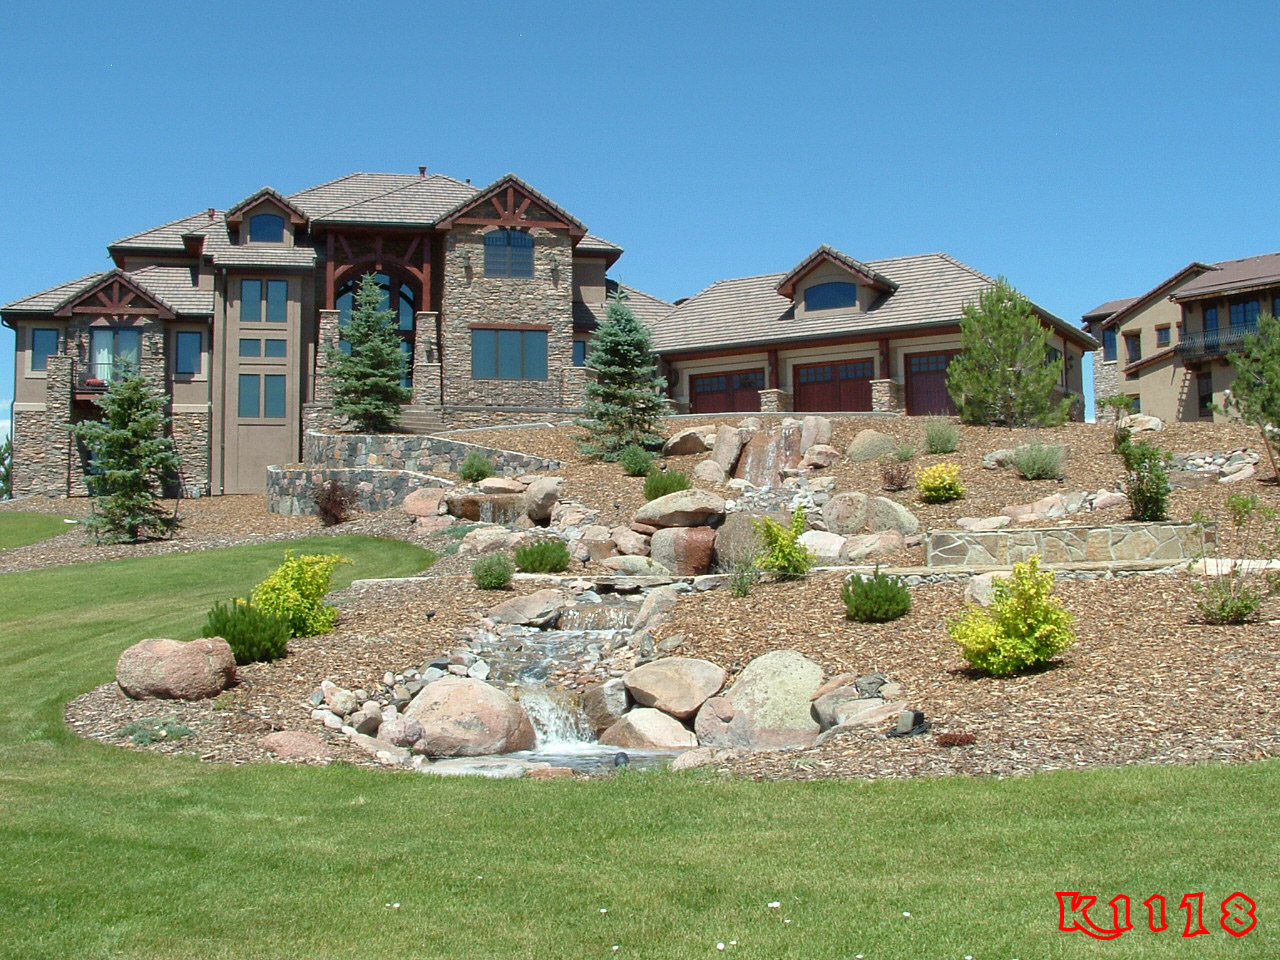 Design House Online Free Here You Go Front Lawn Landscaping Ideas Side Of Hill